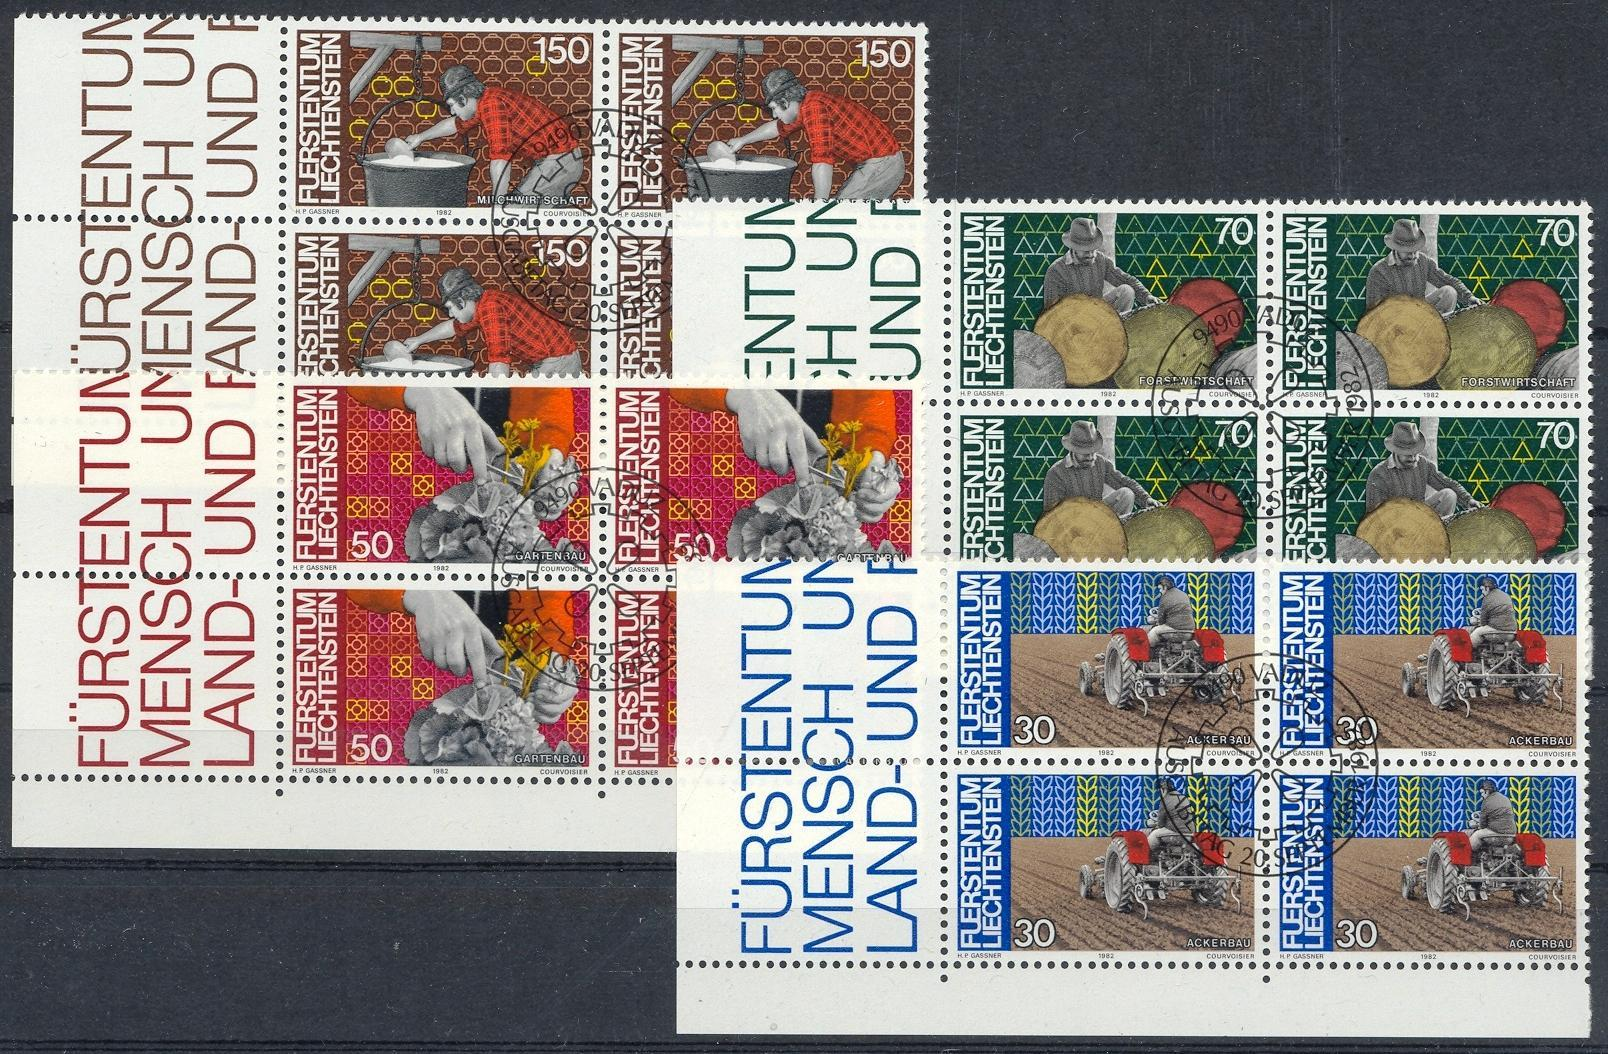 Stamps with Trades, Agriculture from Liechtenstein (image for product #032171)